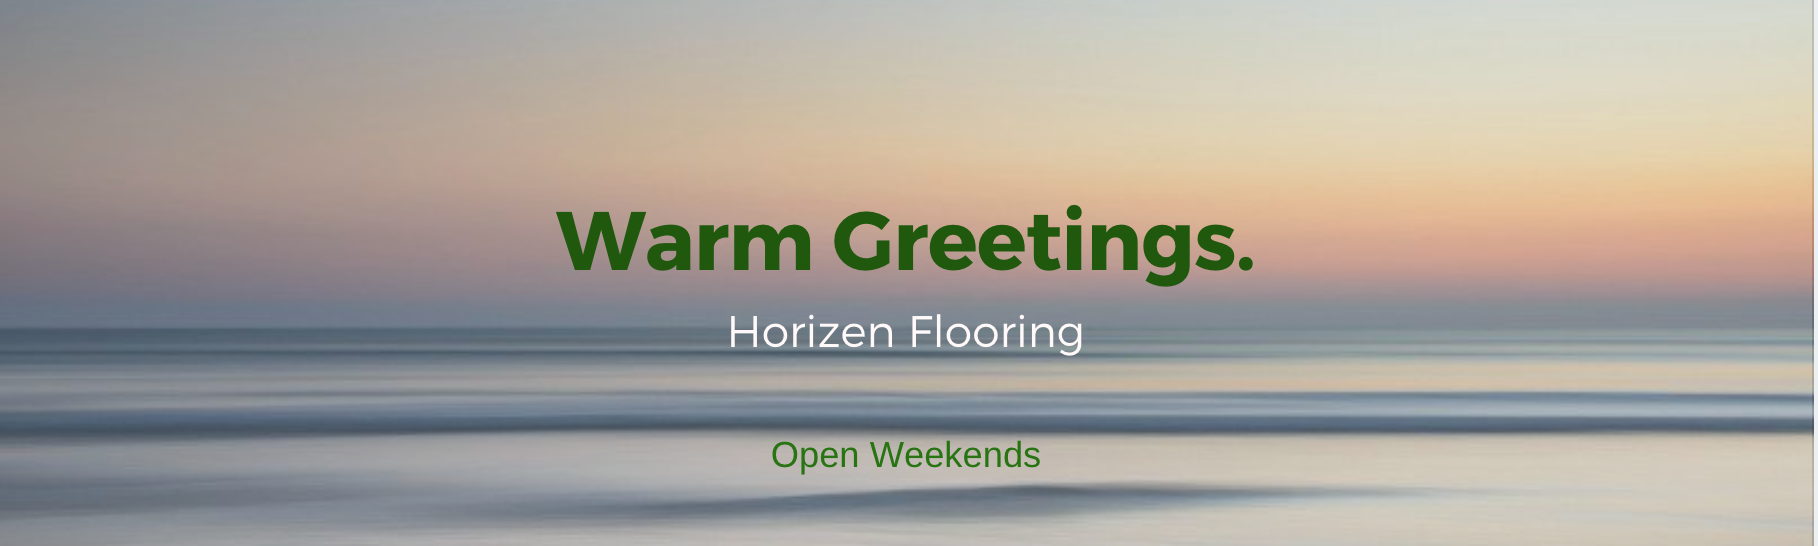 Warm Greetings from Horizen Flooring, your trusted flooring provider Austin Texas. Horizen Flooring offers full turnkey flooring services, proudly servicing the Greater Austin and surrounding areas.